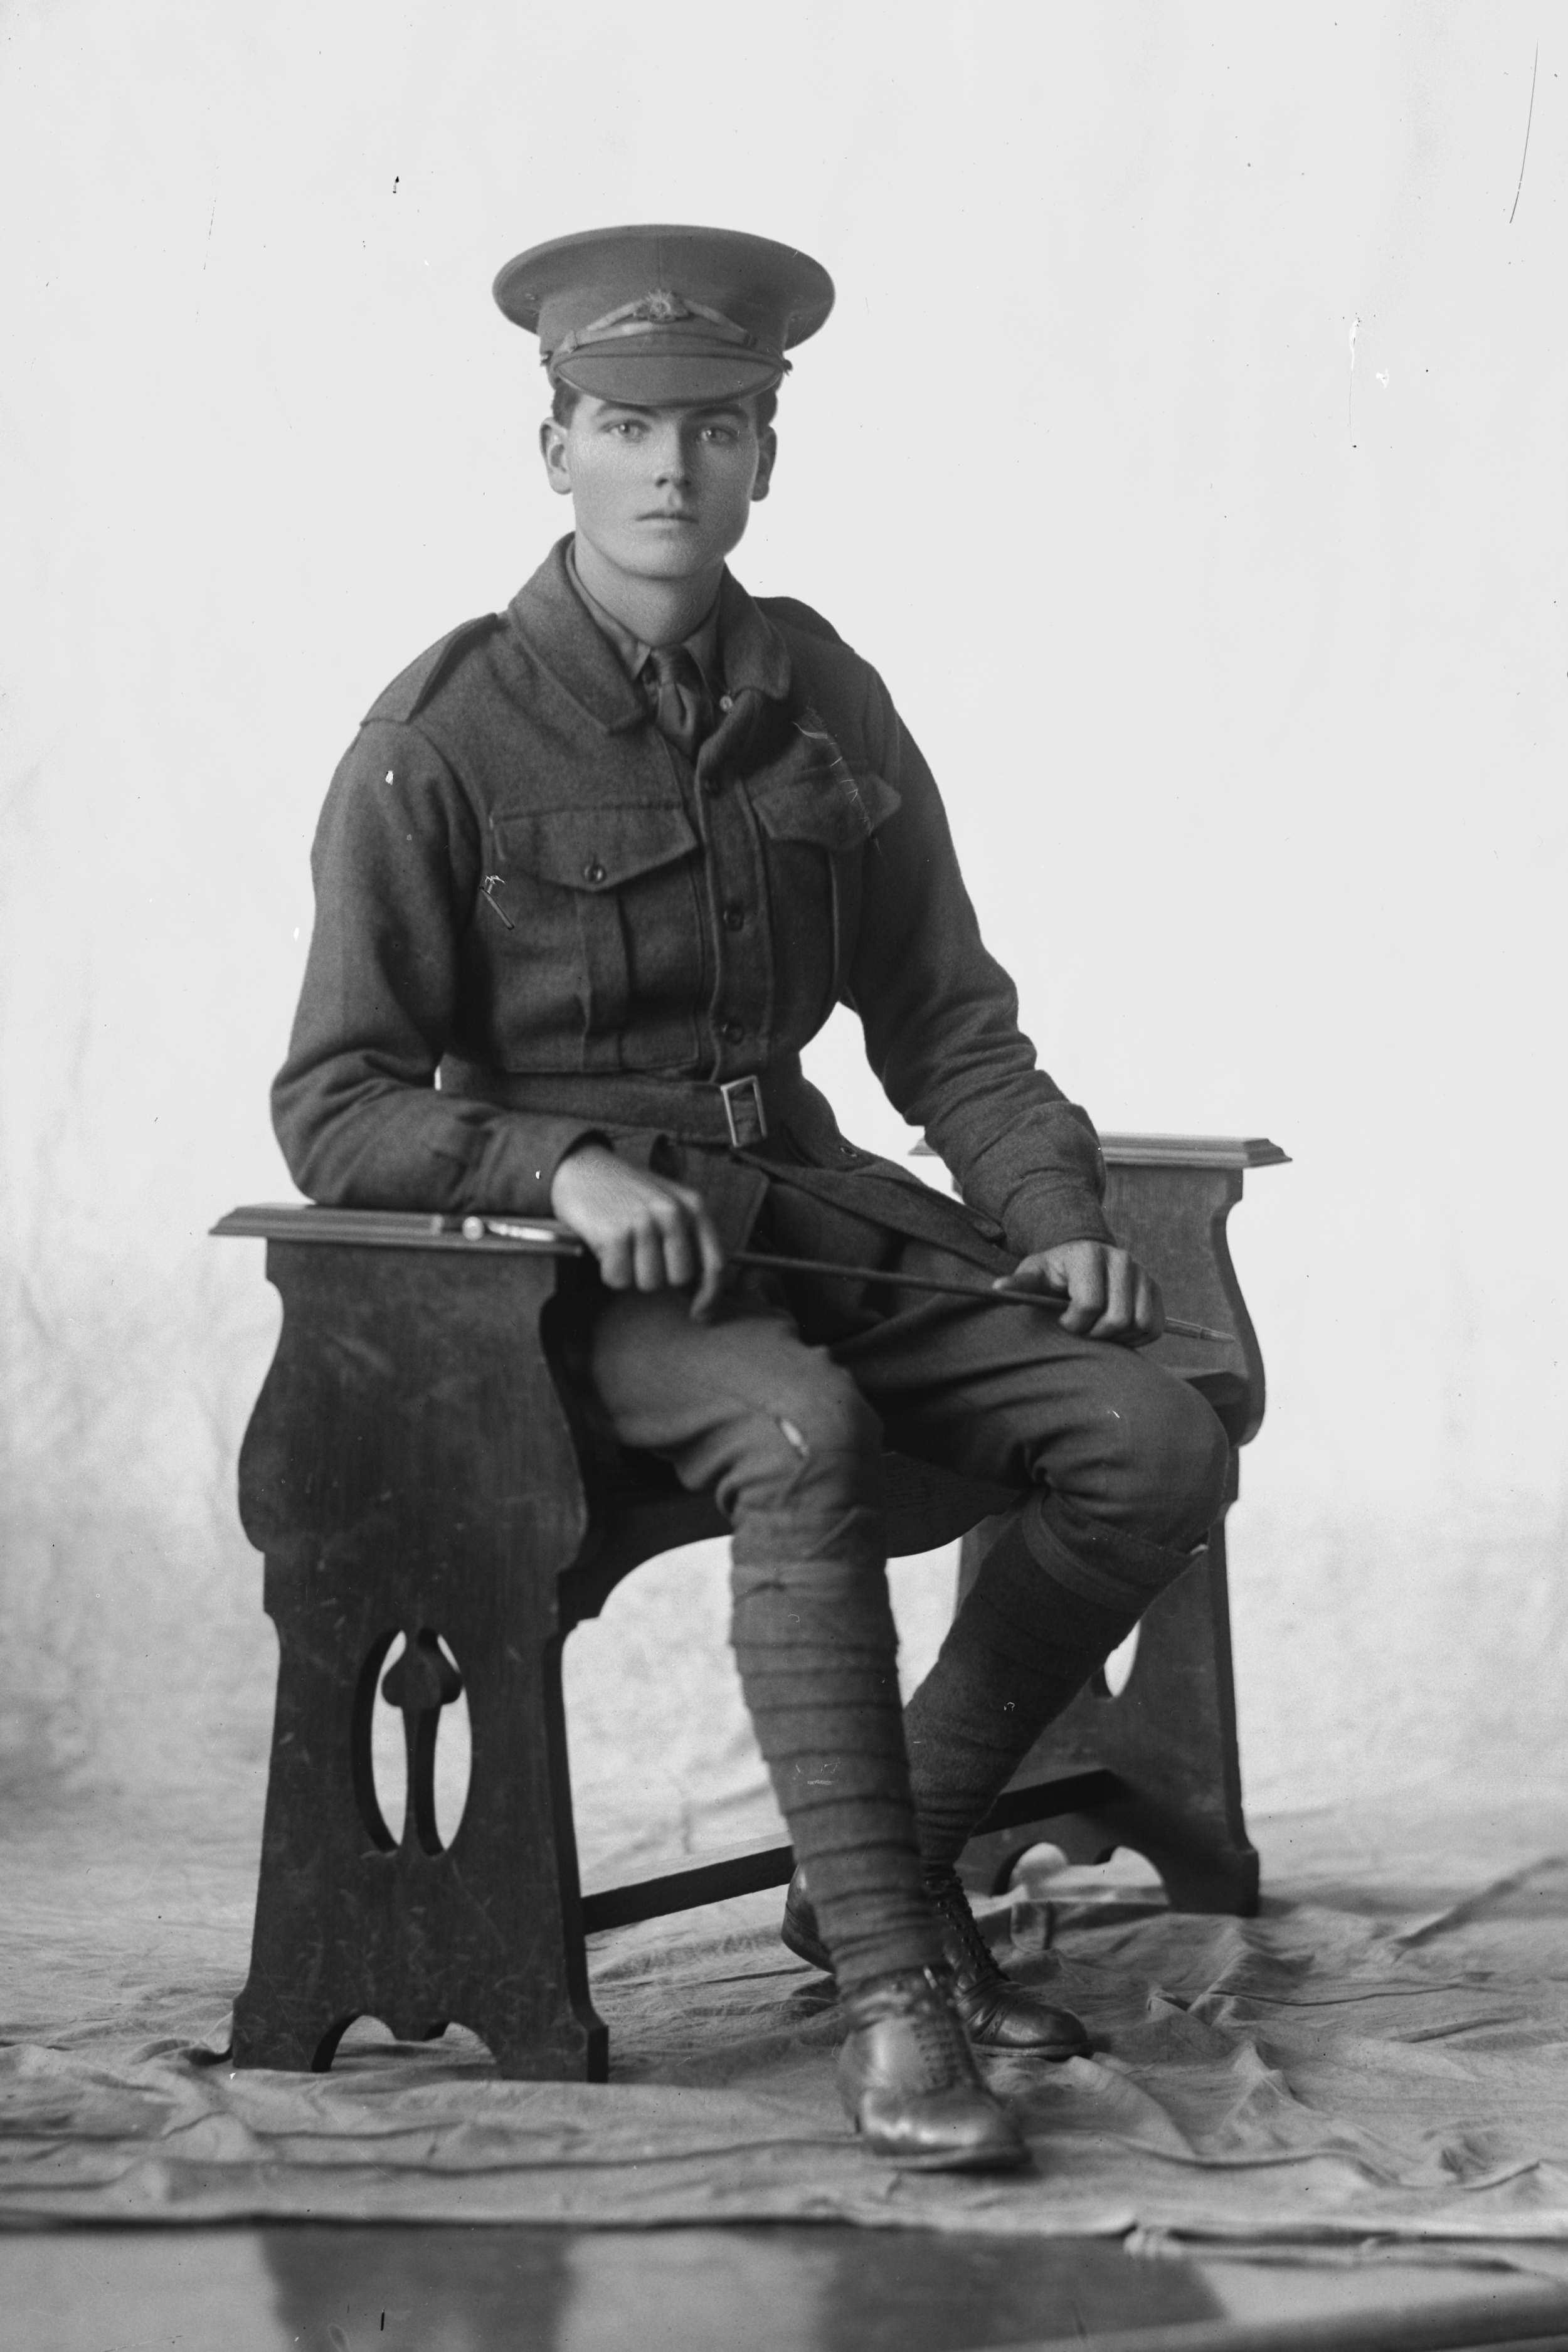 Photographed at the Dease Studio, 117 Barrack Street Perth WA Image courtesy of the State Library of Western Australia: 108520PD